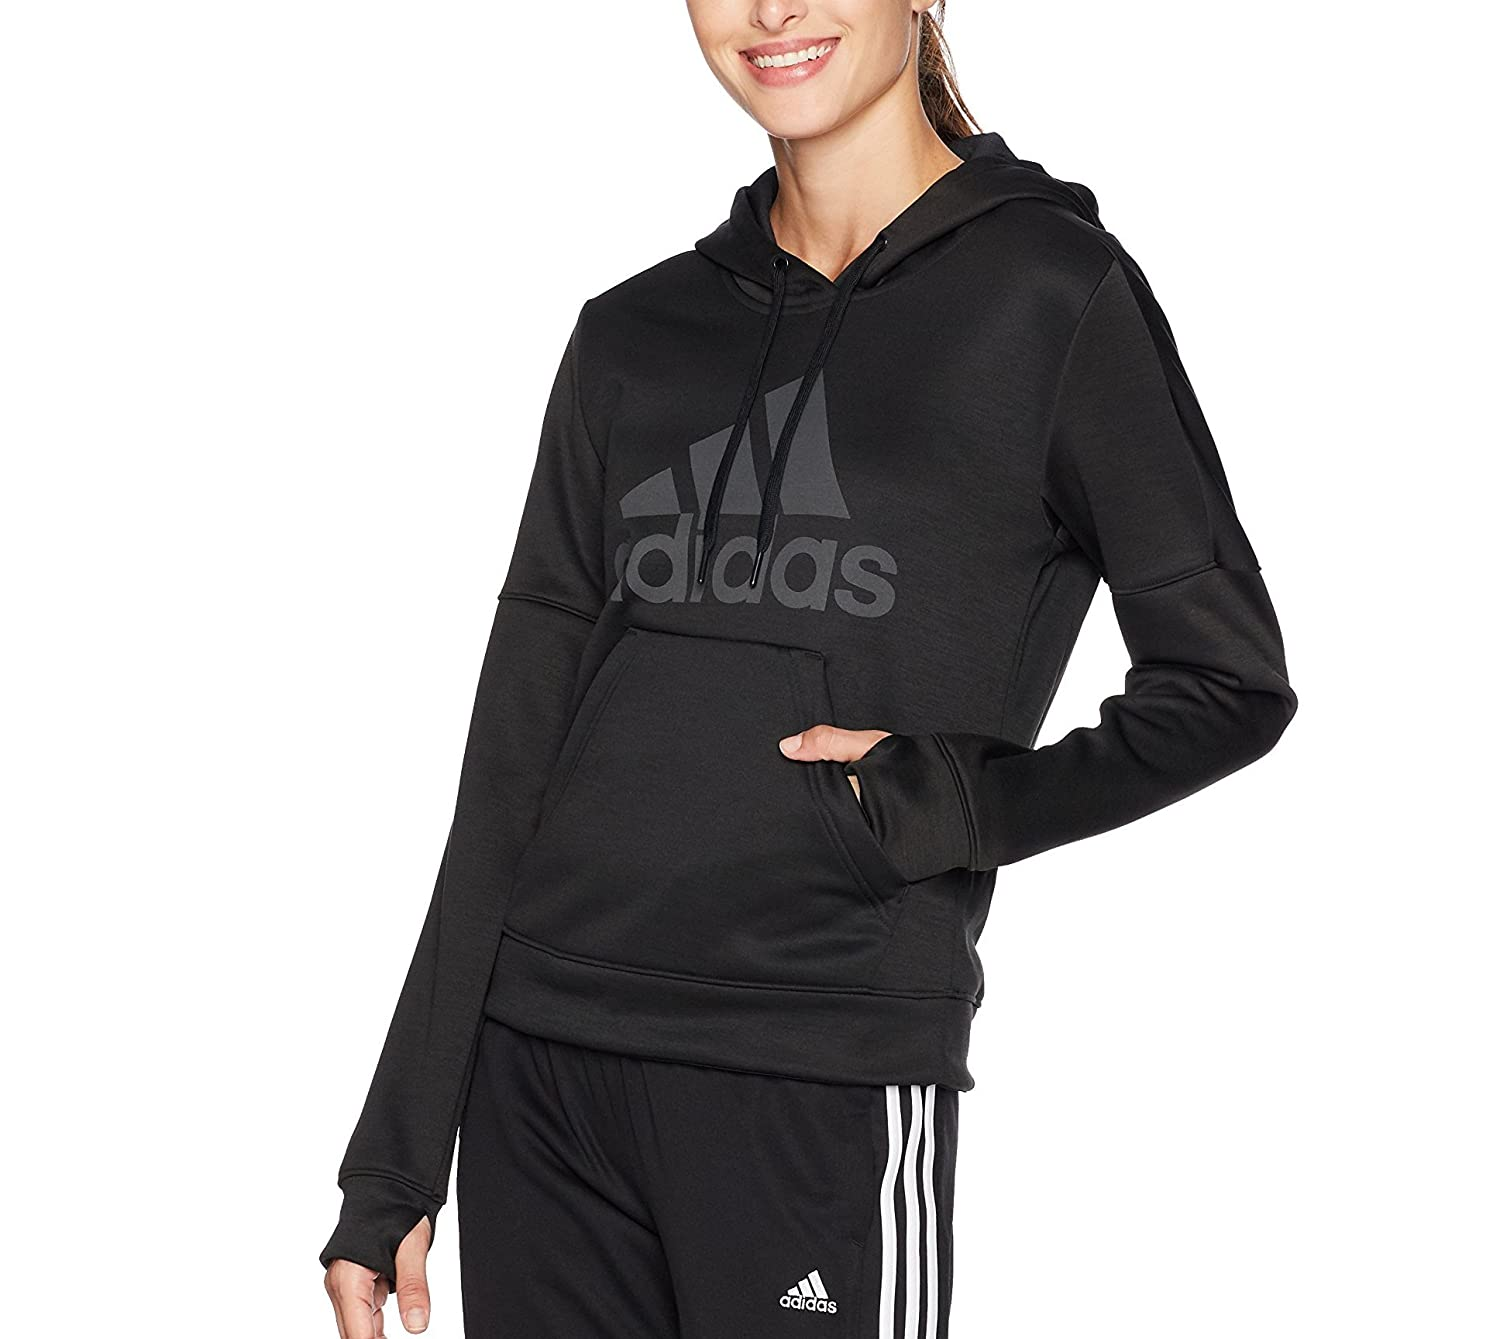 Adidas Women's Team Issue Fleece Pullover Logo Hoodie F17SPWW580-P